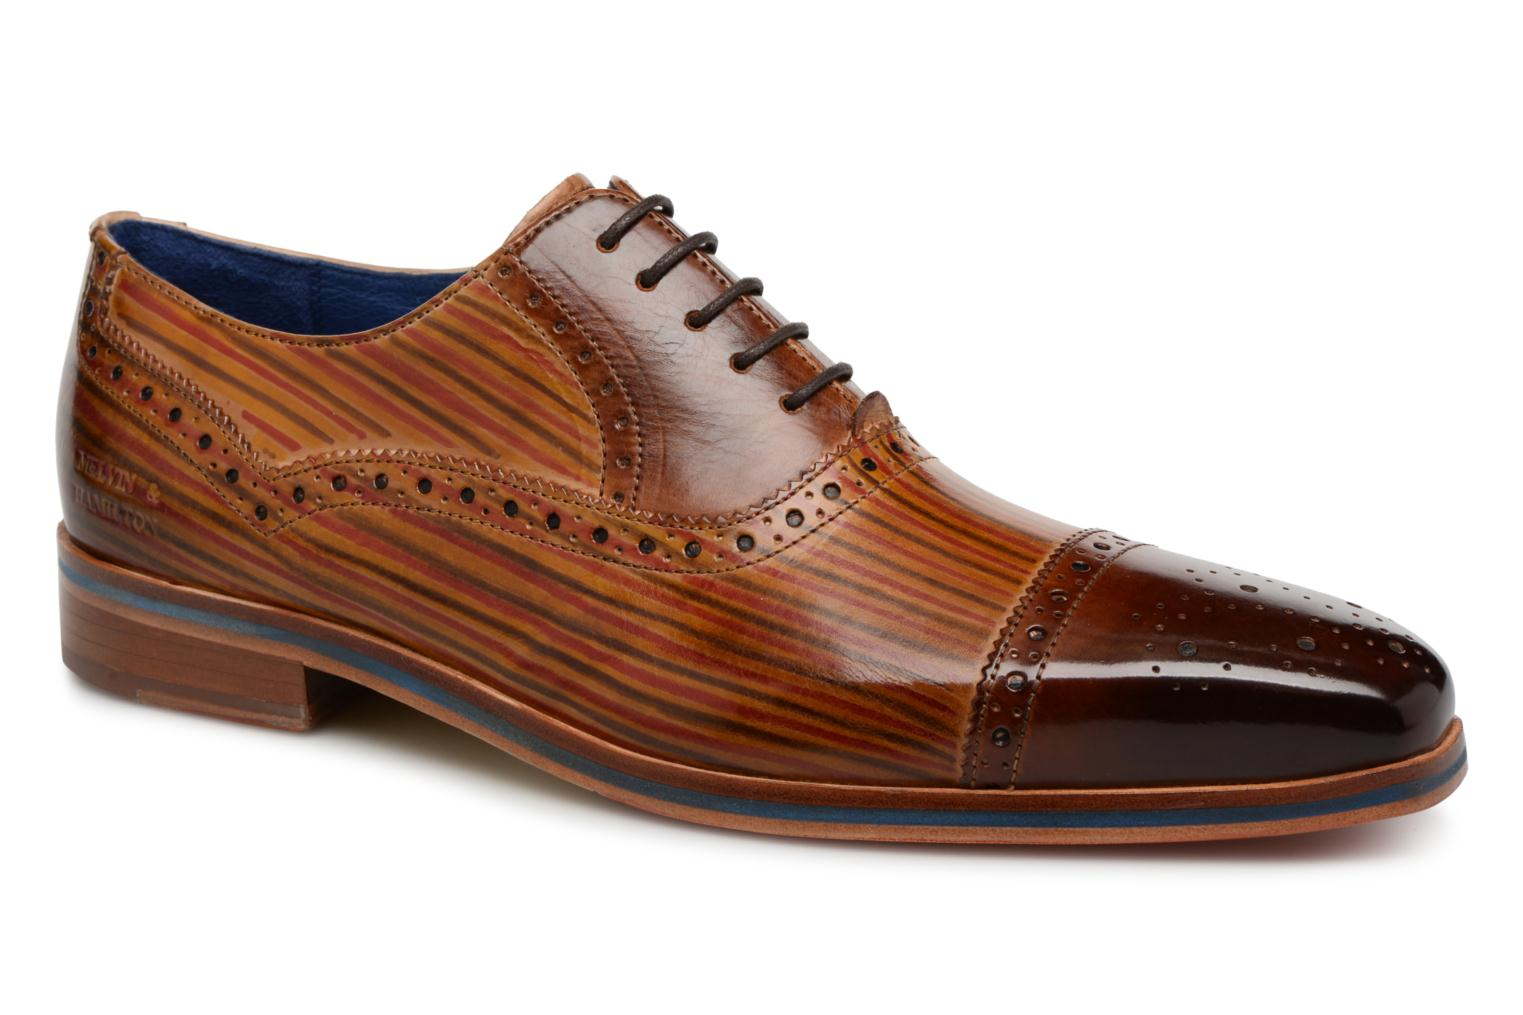 Marques Chaussure homme Melvin & Hamilton homme Lewis 36 Crust tan /sand line dark brown yellow red